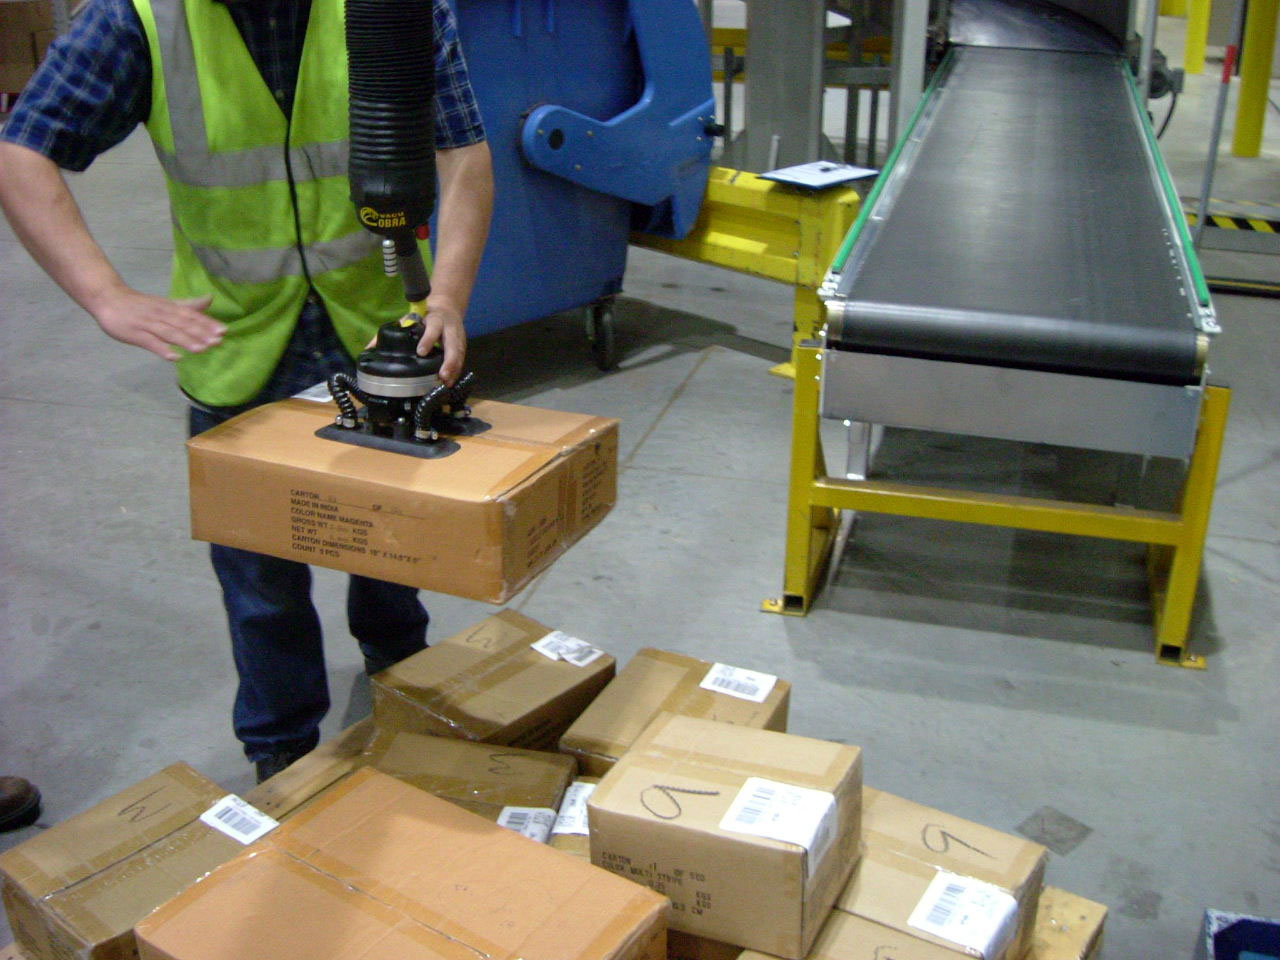 Lifting parcels from conveyor to pallet